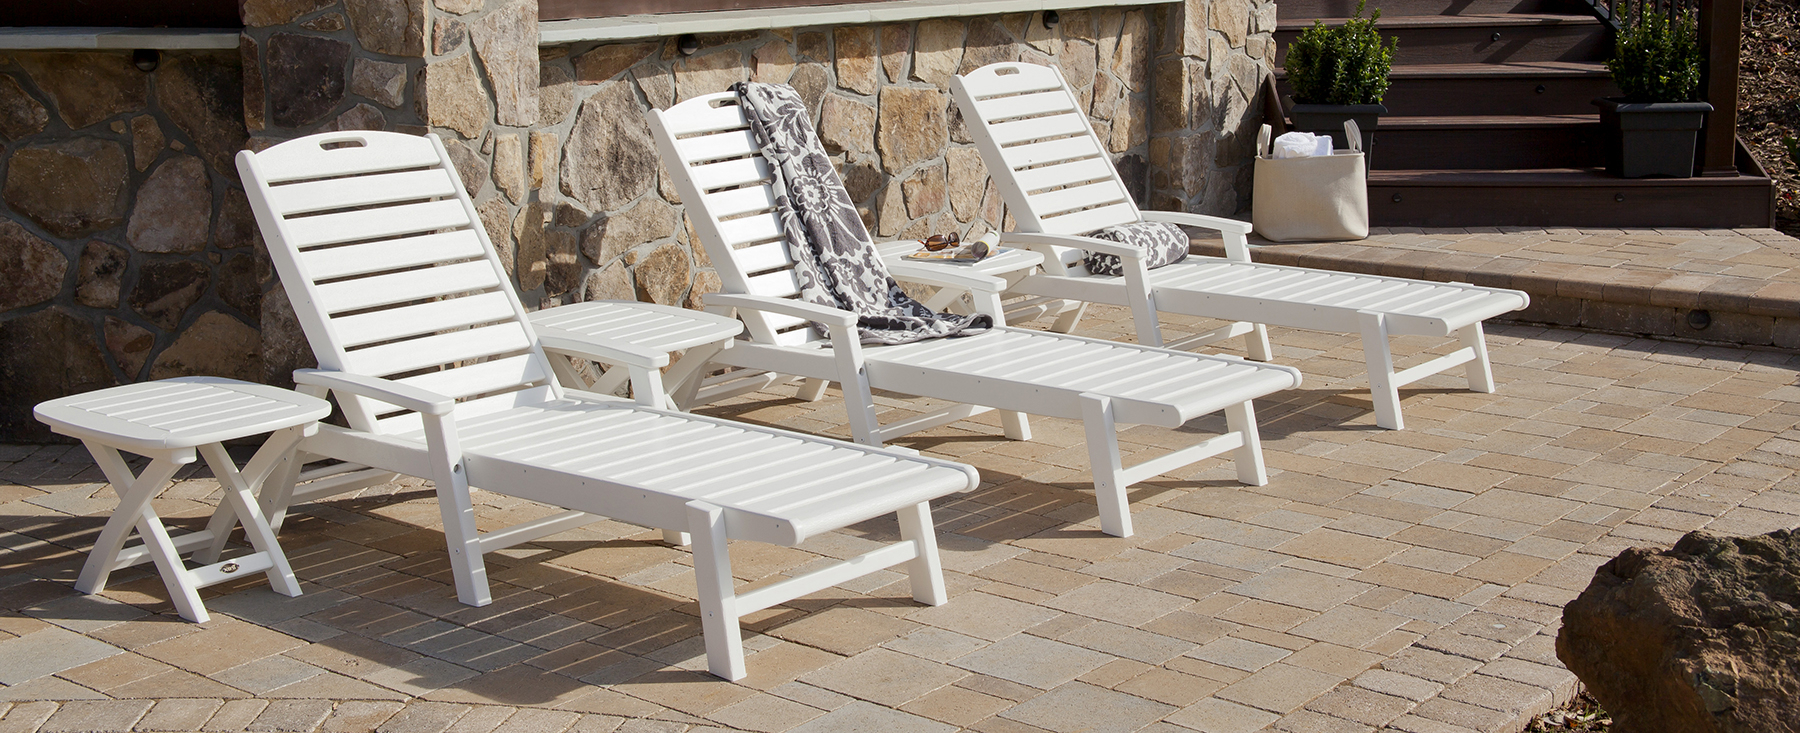 All Weather Single Outdoor Adjustable Loungers In 2019 The Shopper's Guide To Buying An Outdoor Chaise Lounge (View 12 of 25)